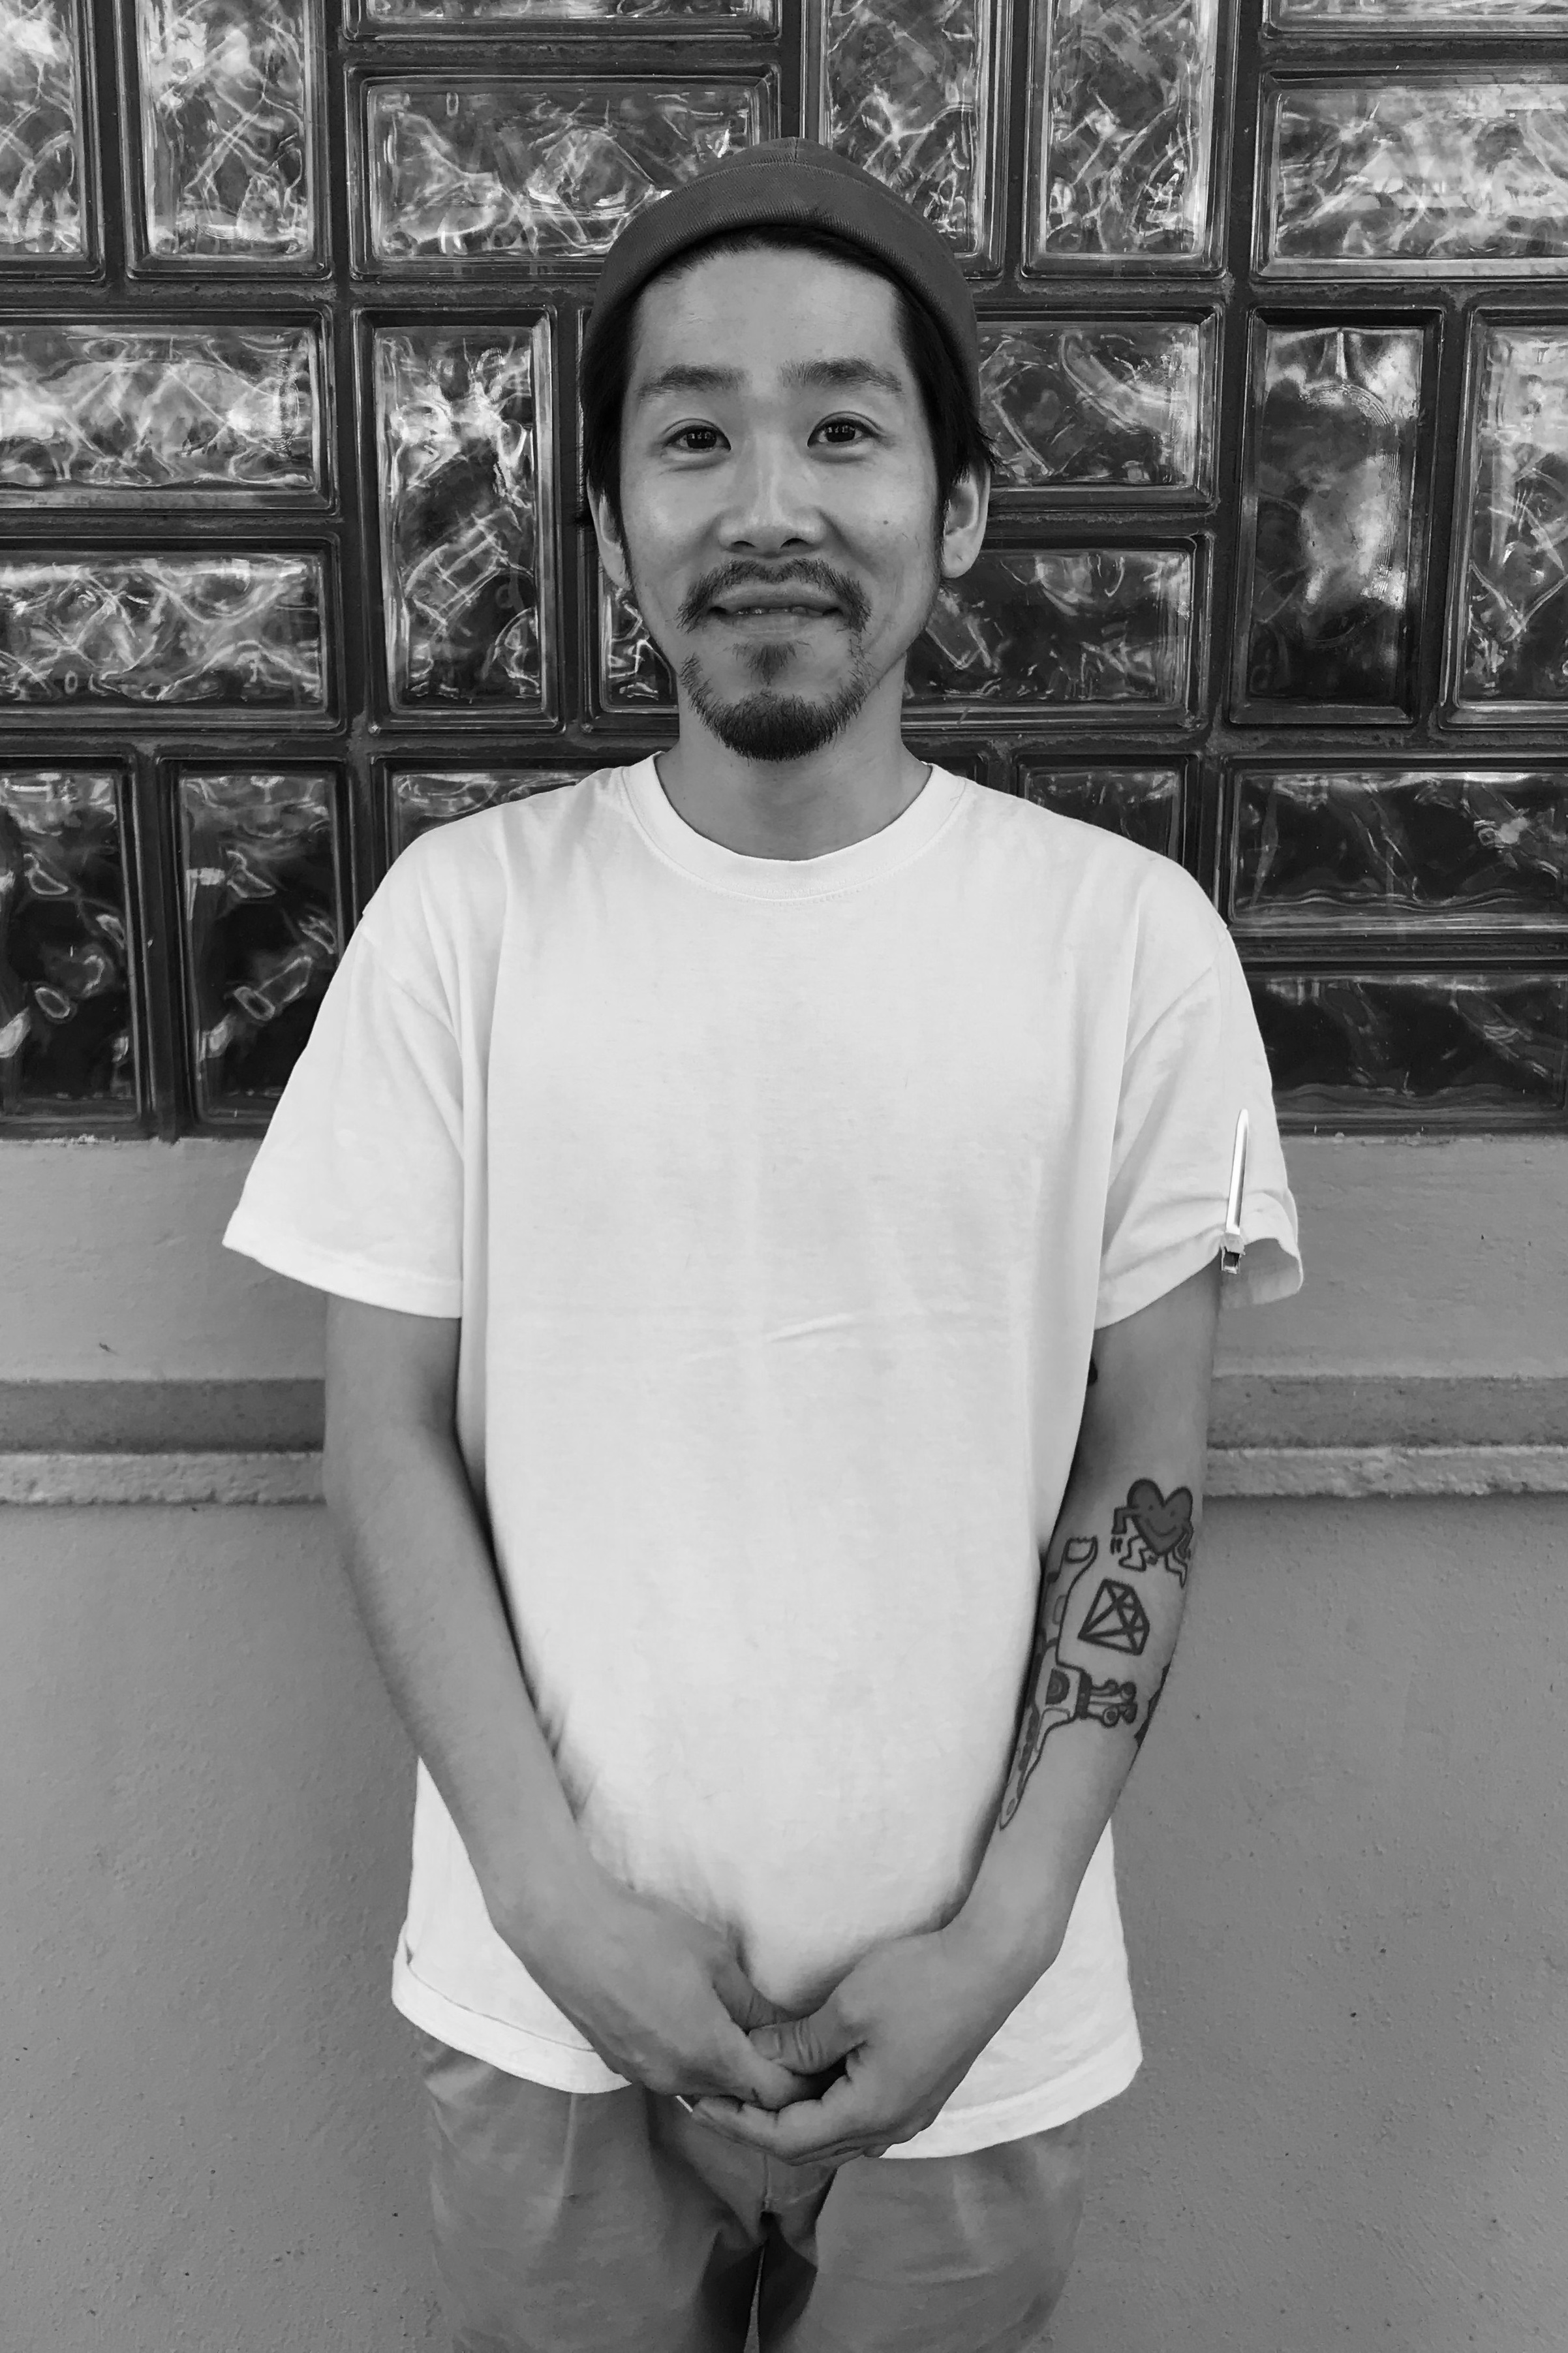 Meet Kosuke, styilst at ESHK Hair Moabit, Berlin.